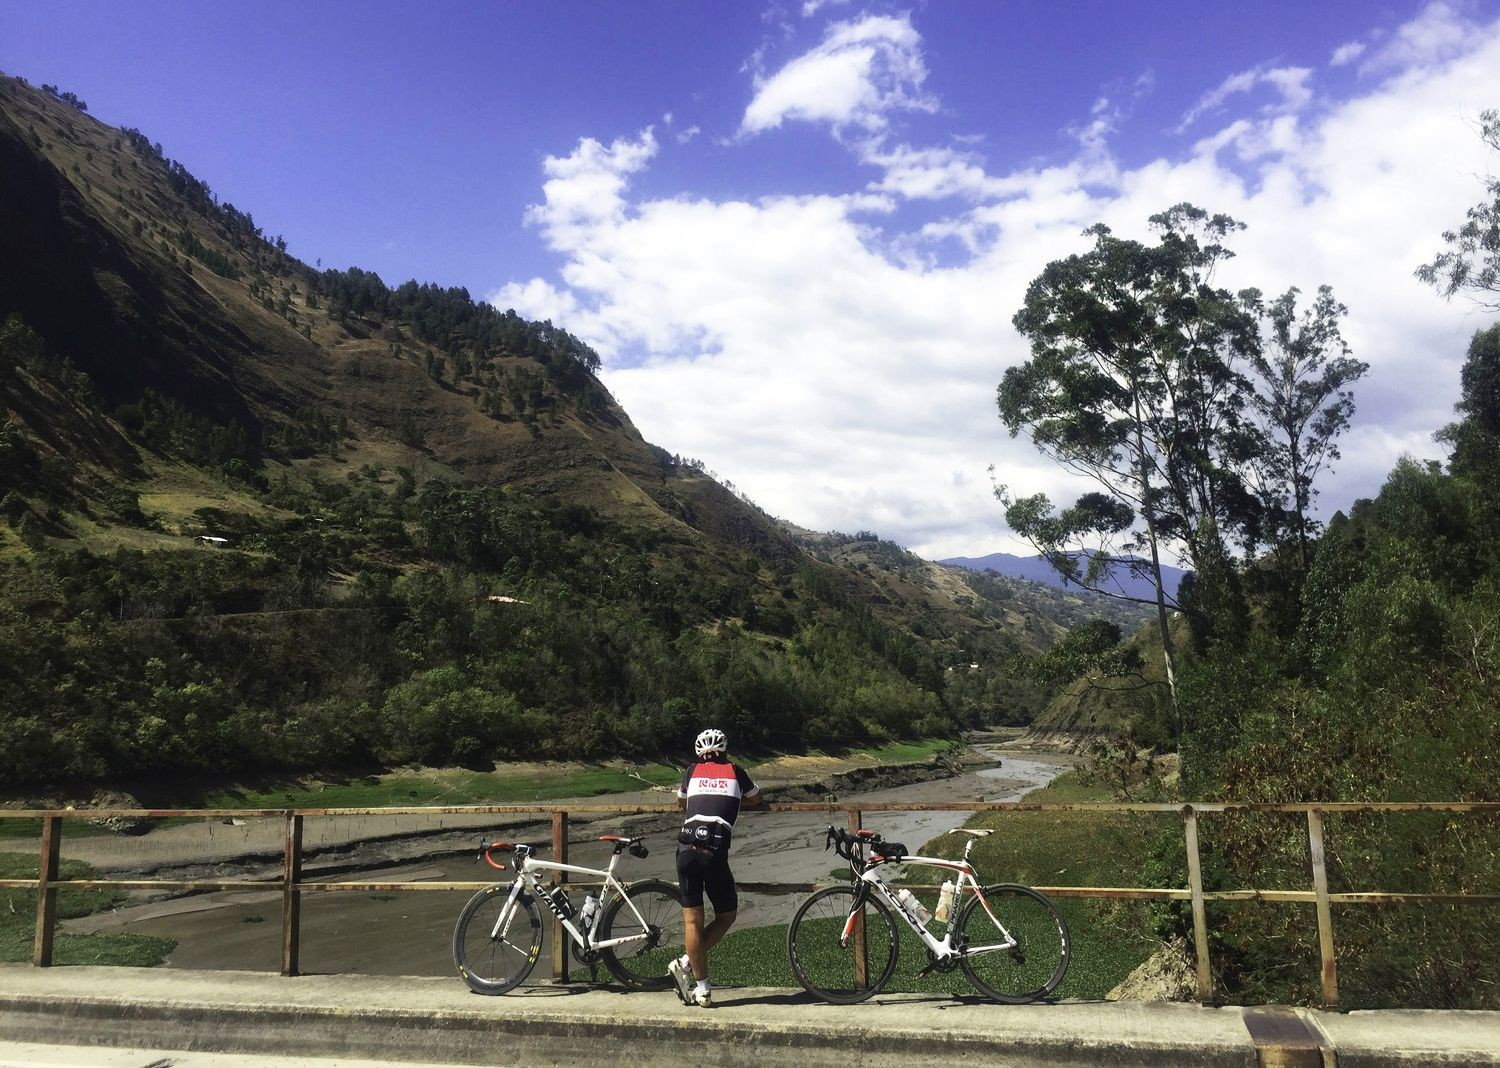 alto-de-letras-colombia-road-cycling-holiday-skedaddle.jpg - Colombia - Emerald Mountains - Road Cycling